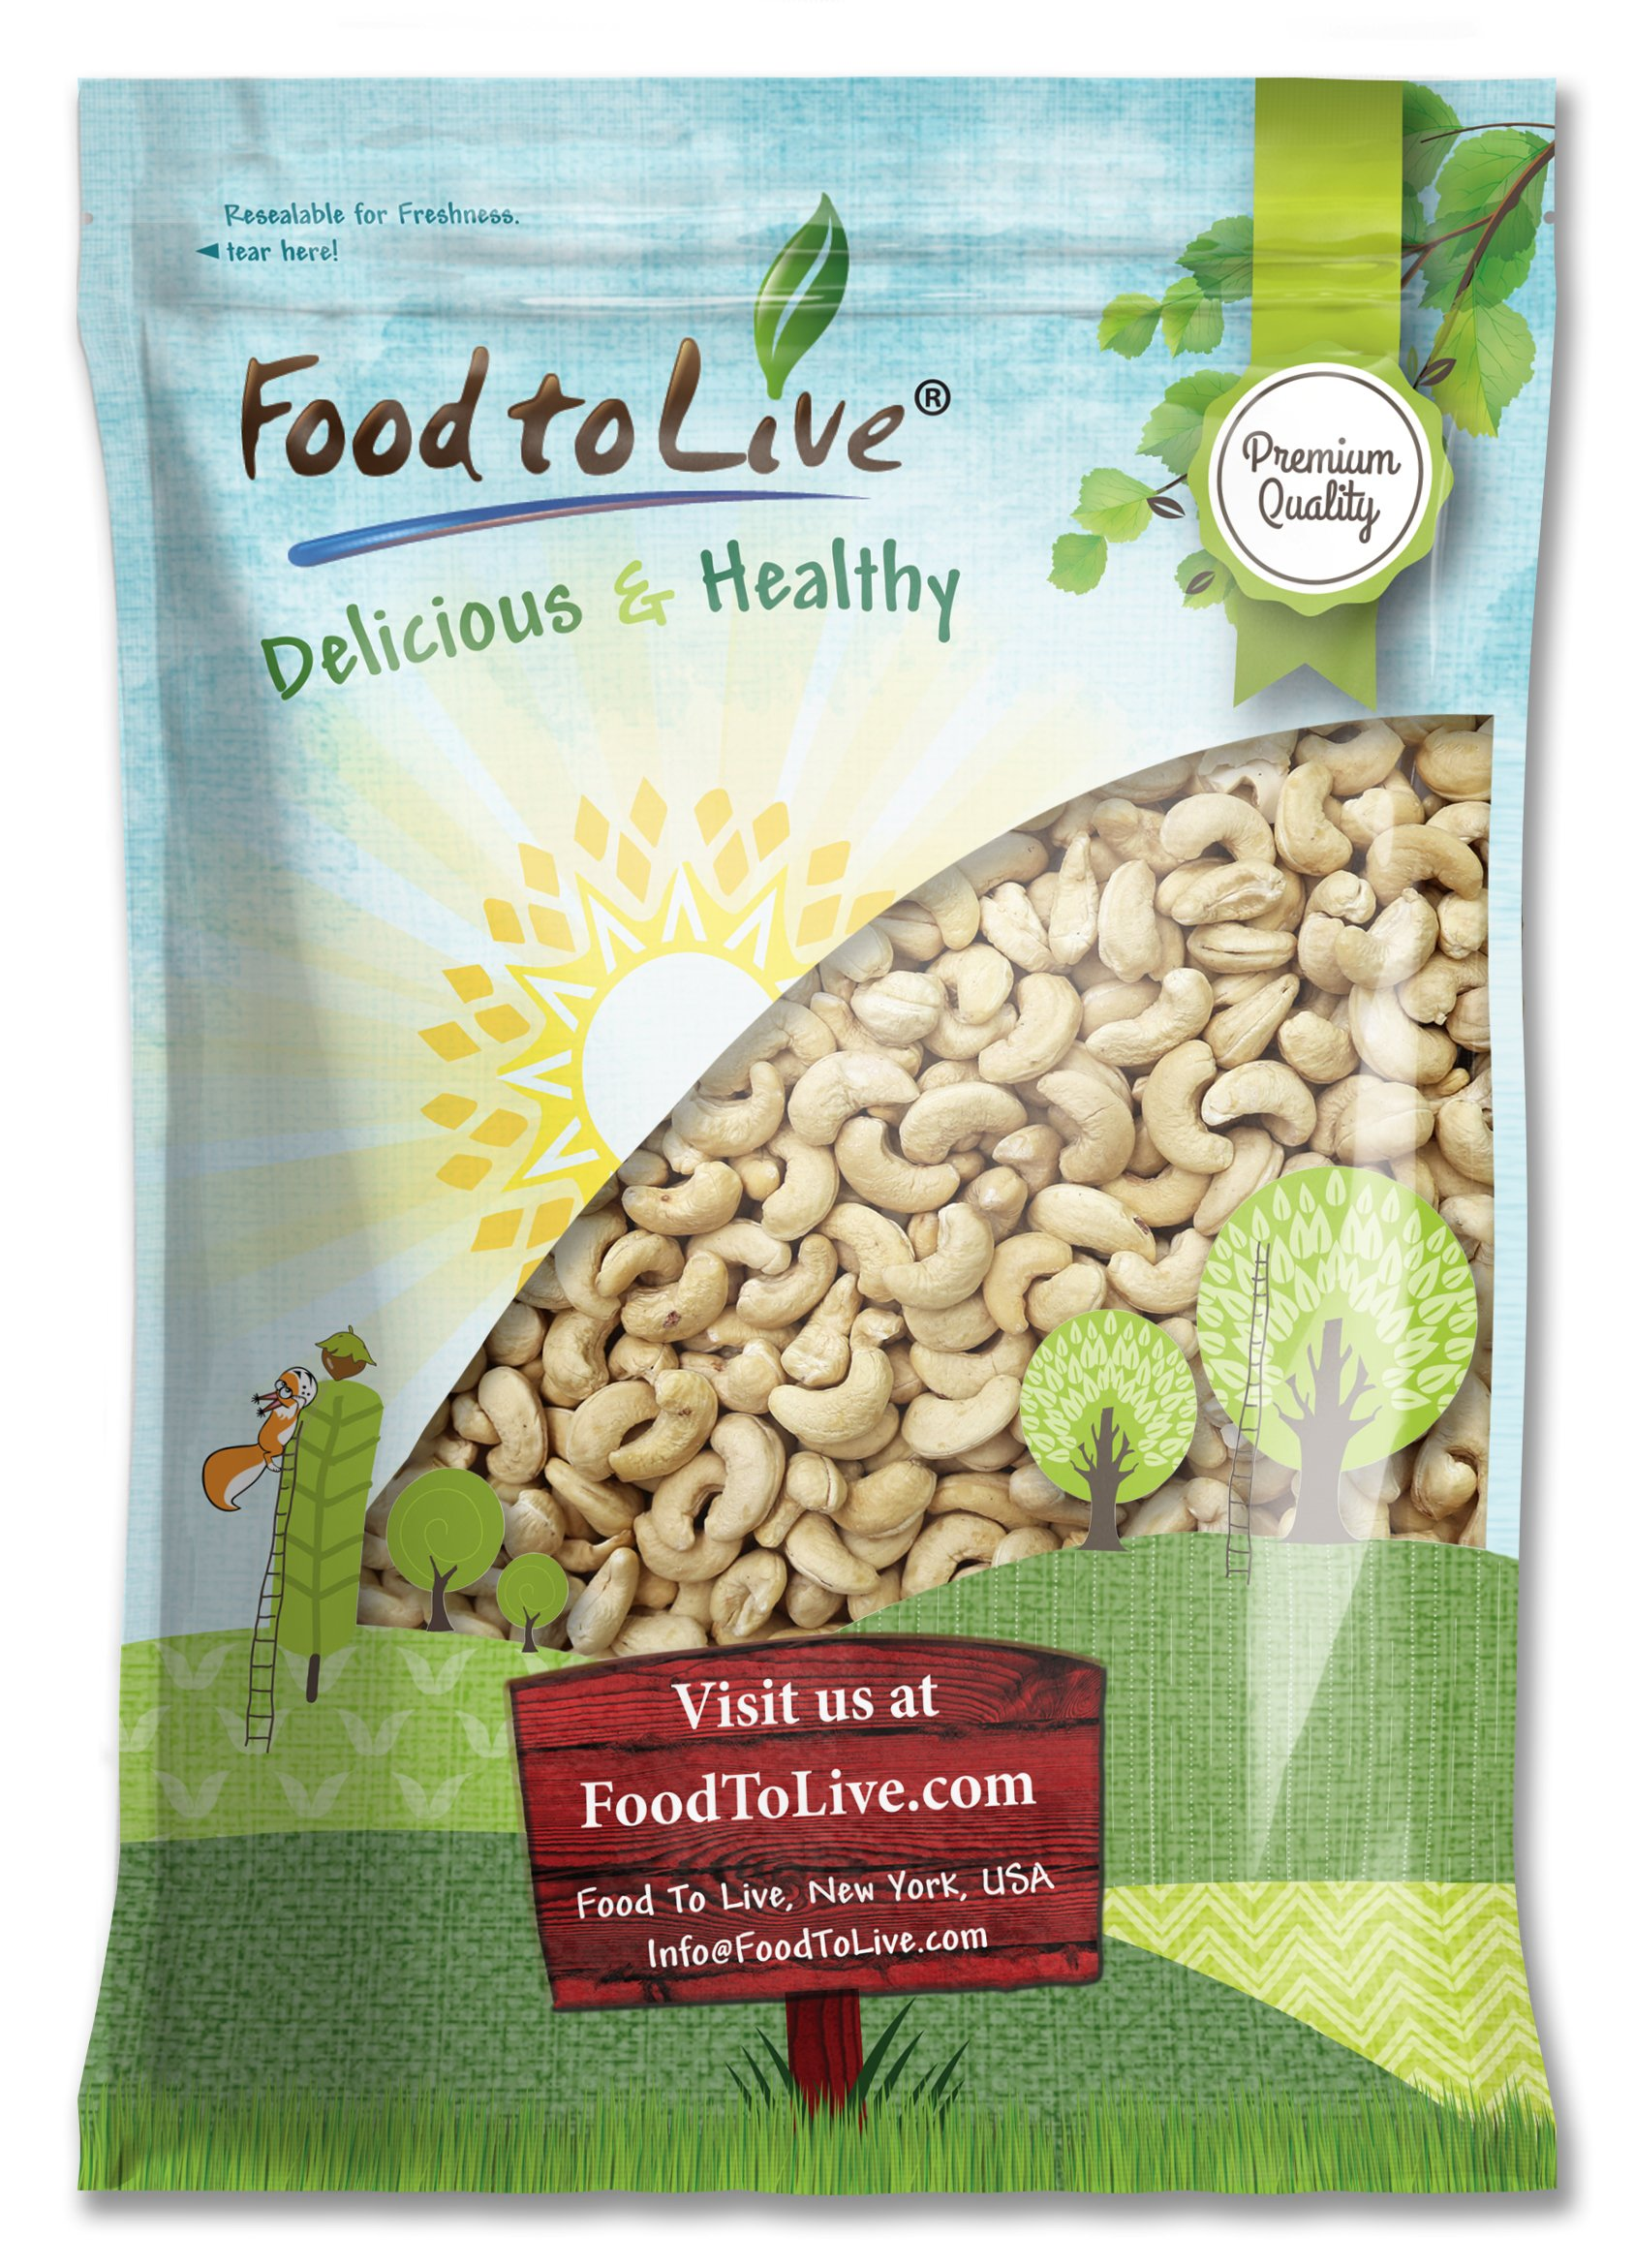 Food to Live Cashews (Whole, Natural) (10 Pounds)